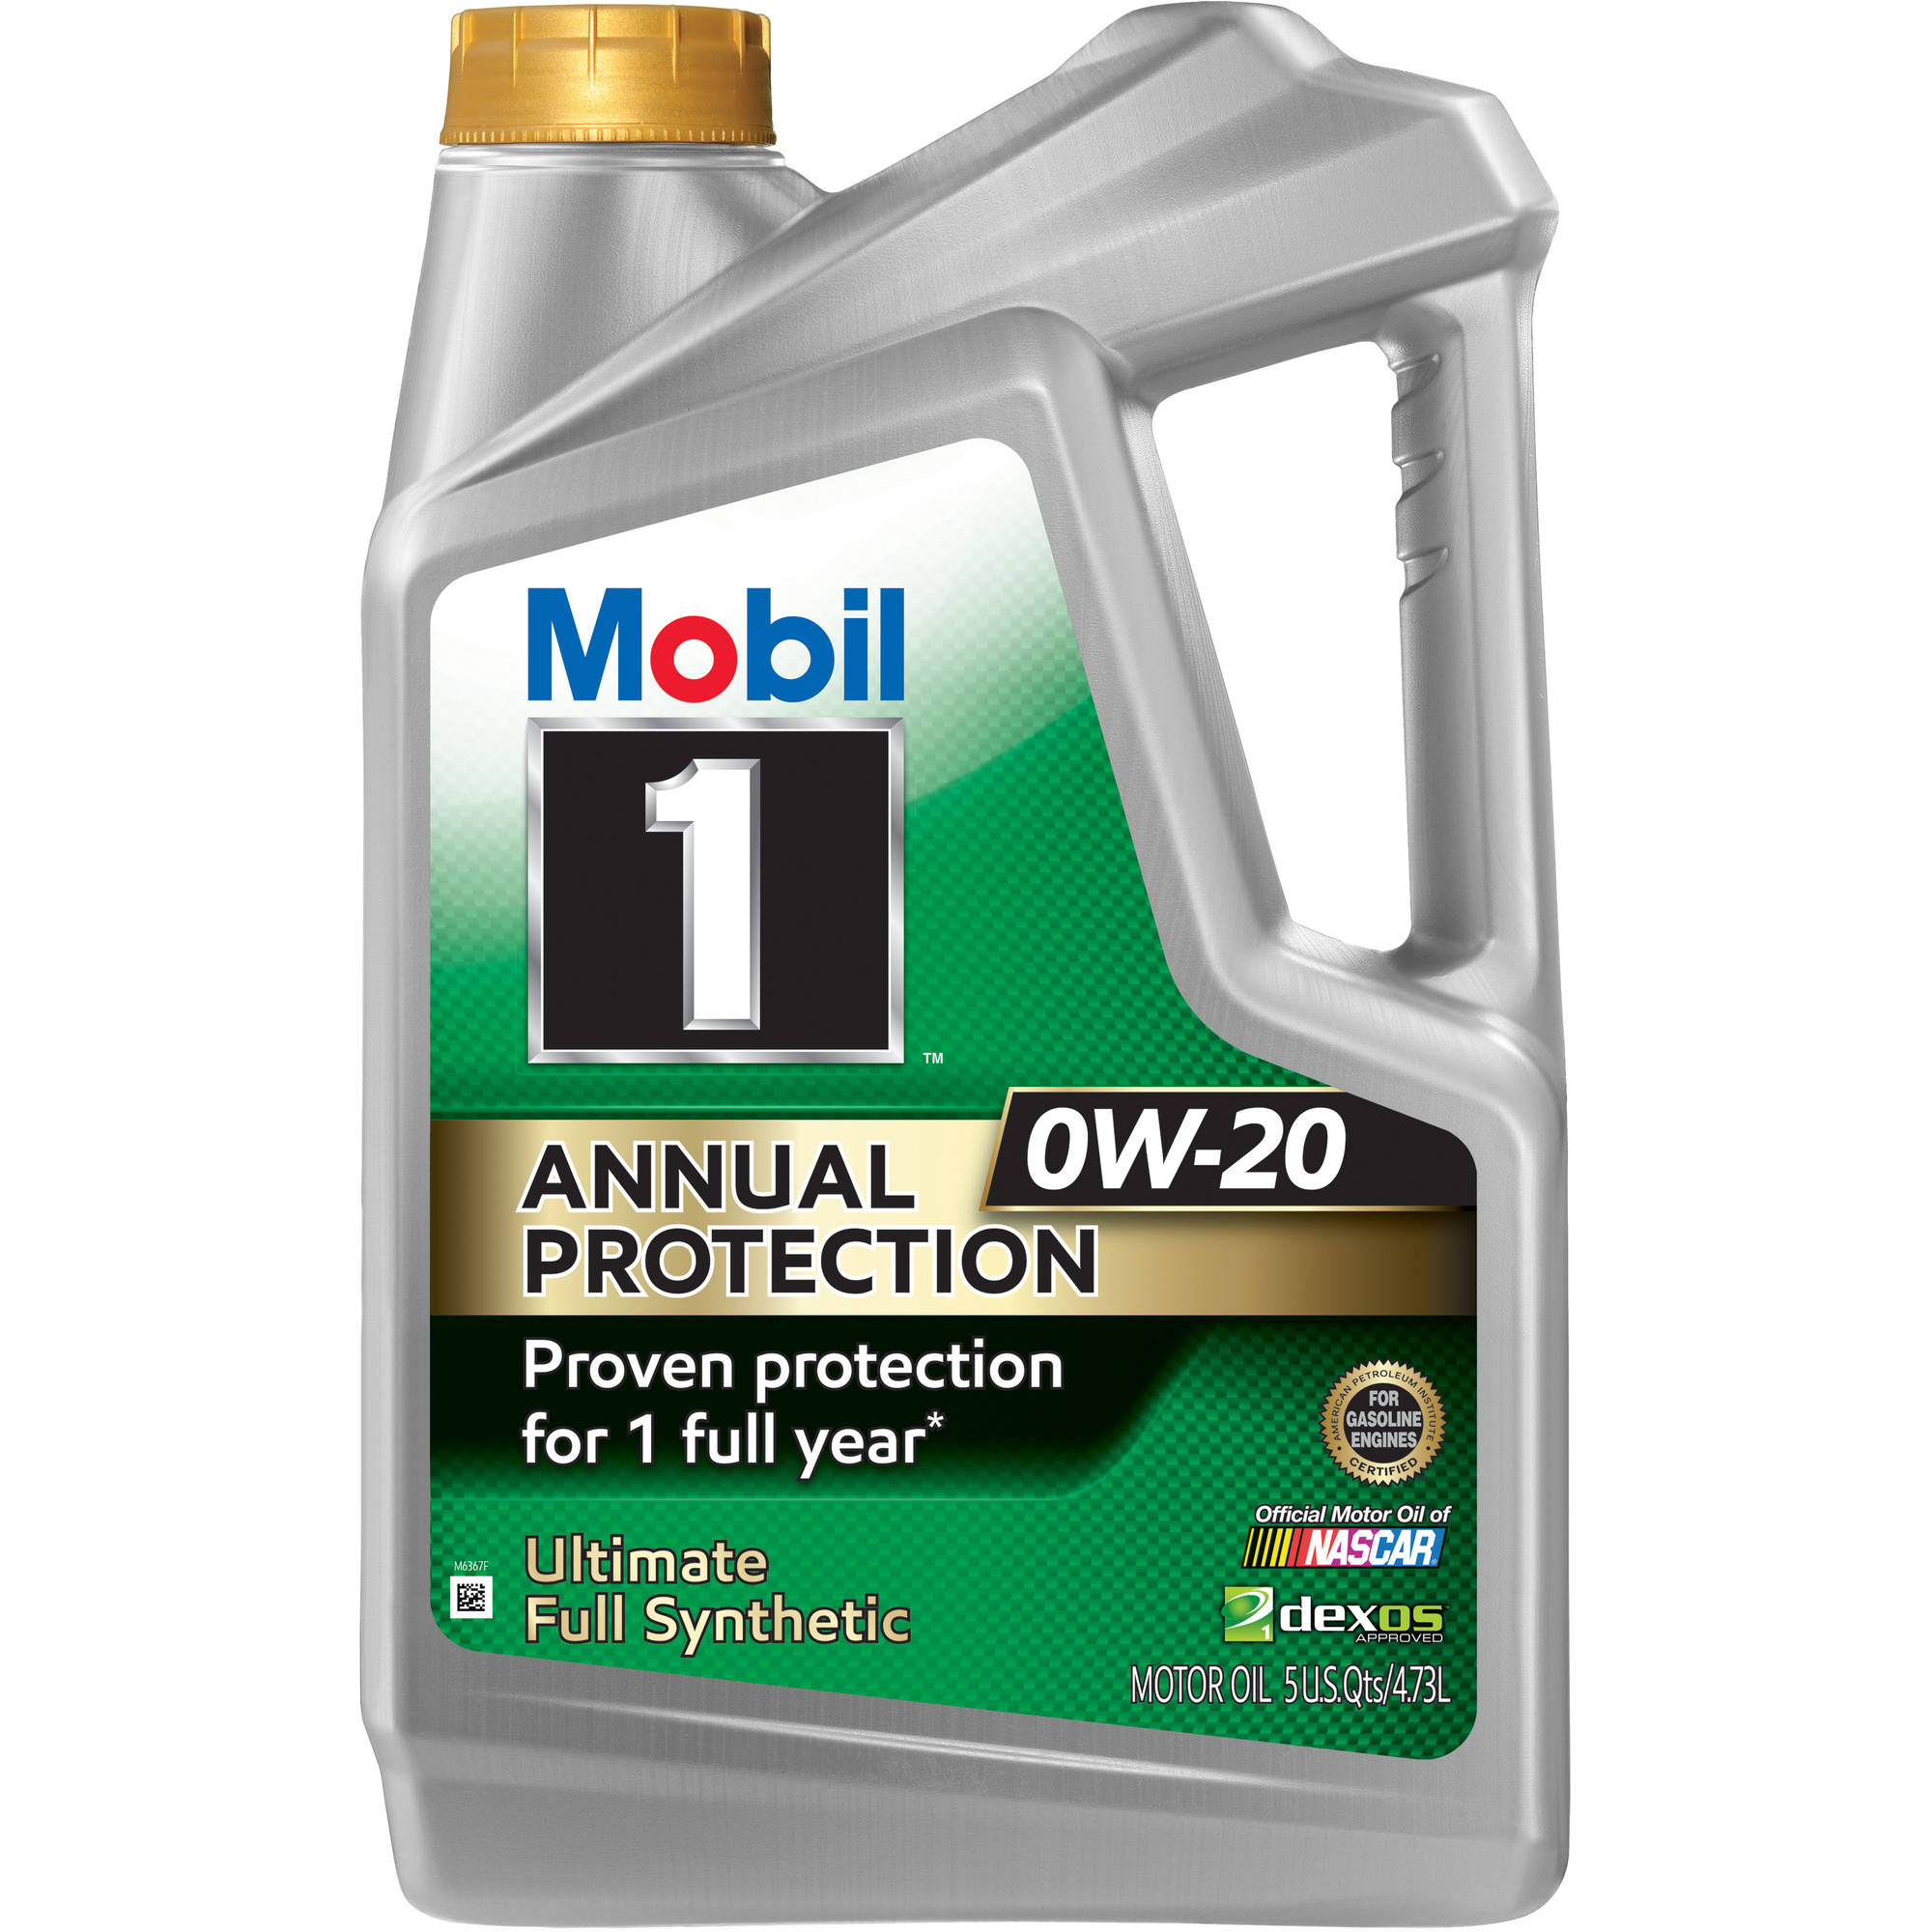 Mobil 1 Annual Protection 0W20, 5 qt